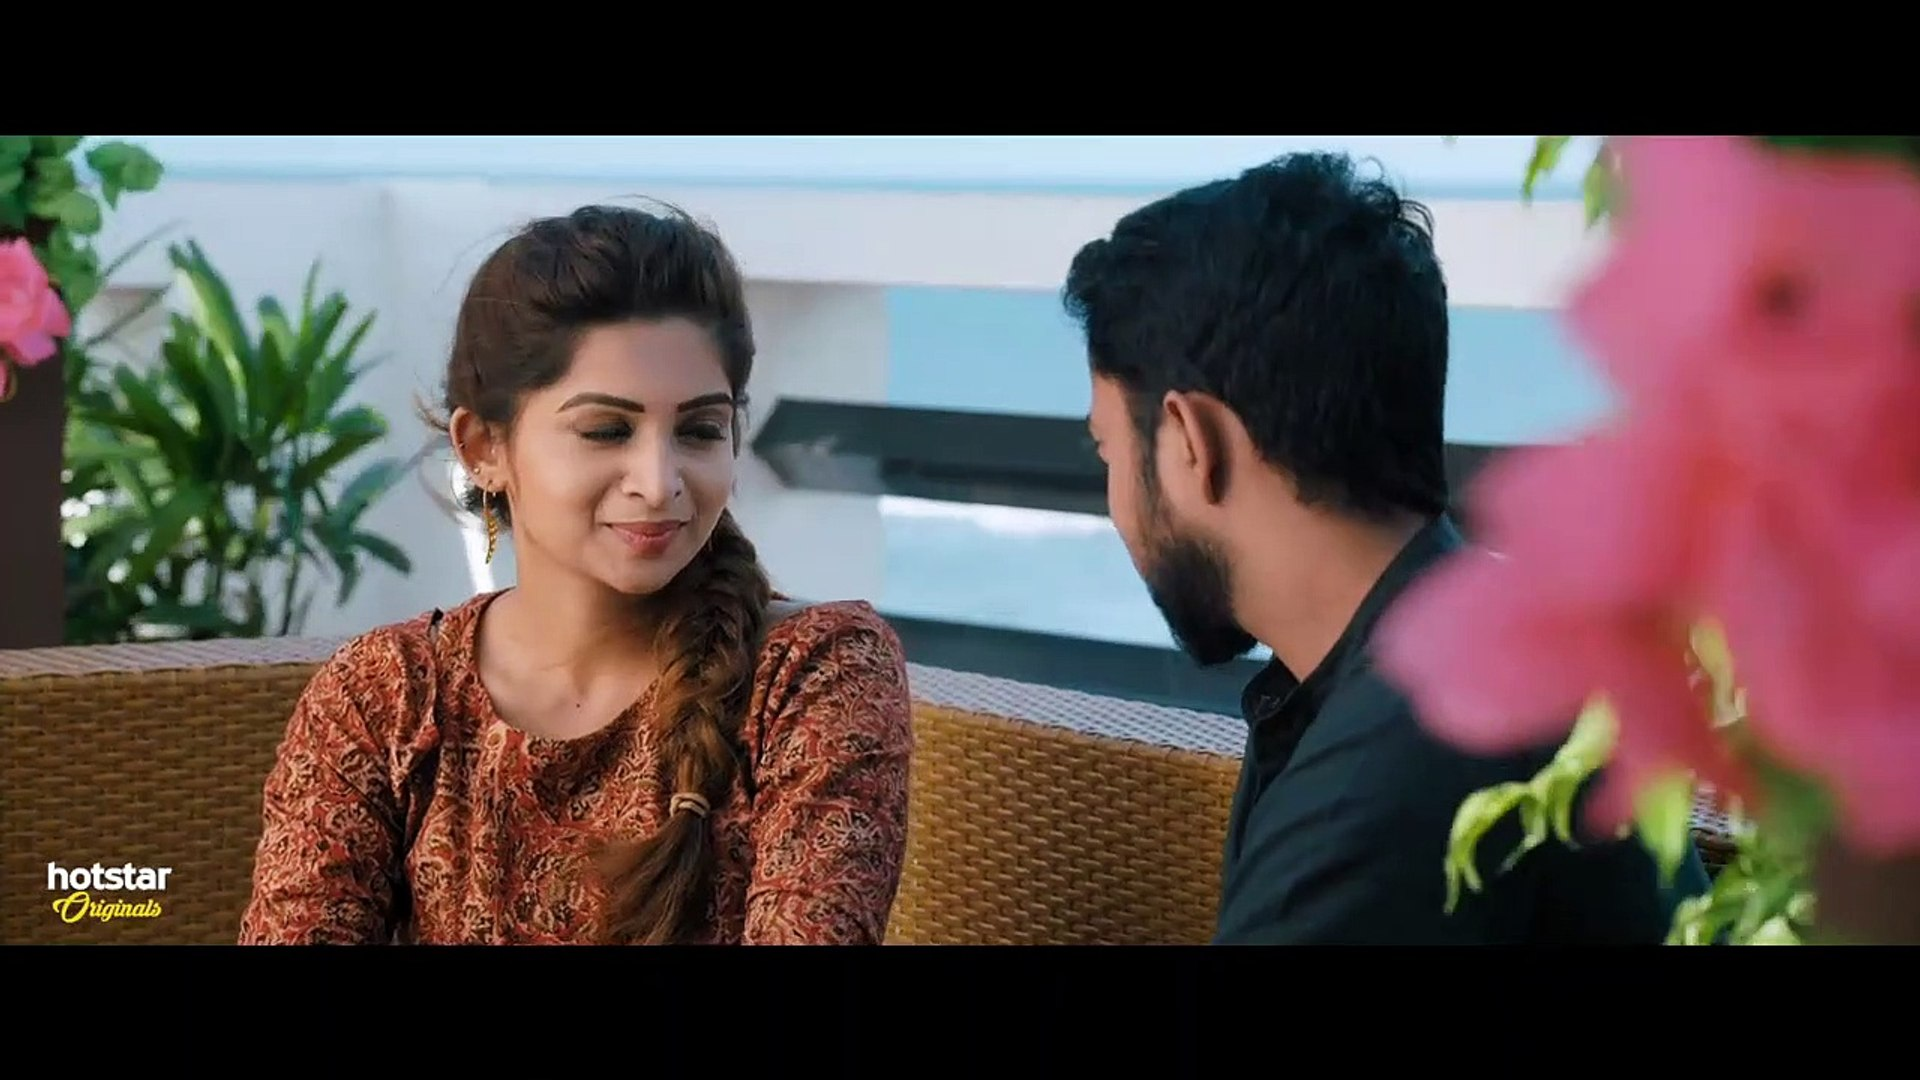 as im suffering from kadhal watch online free